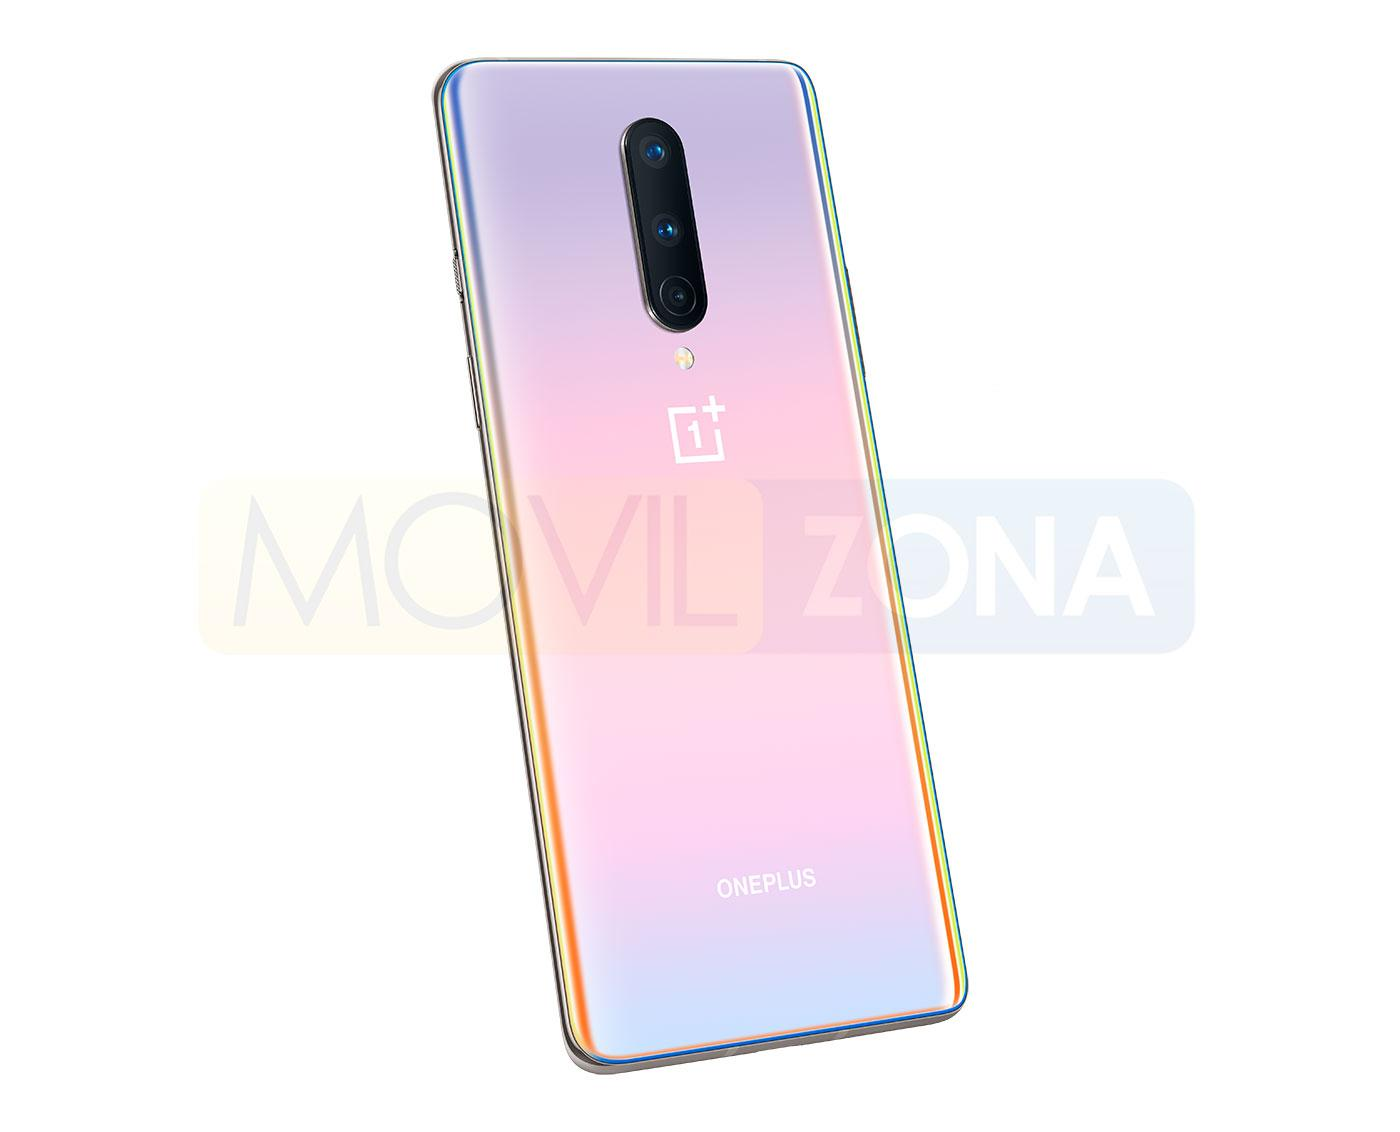 OnePlus 8 interestelar